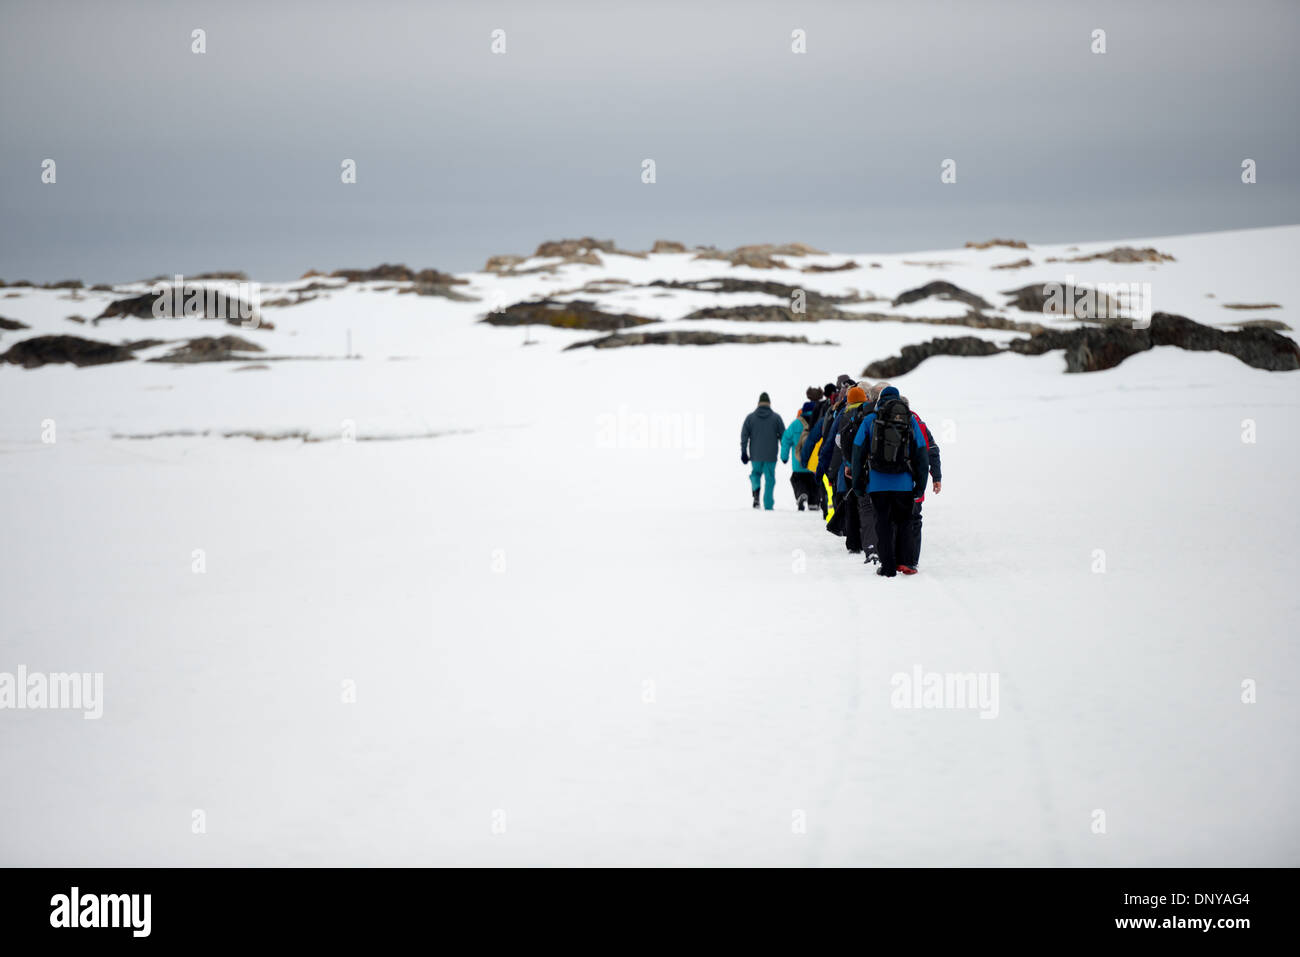 ANTARCTICA - A line of tourists walk in single file across the sea ice towards Wordie House in Antarctica. - Stock Image